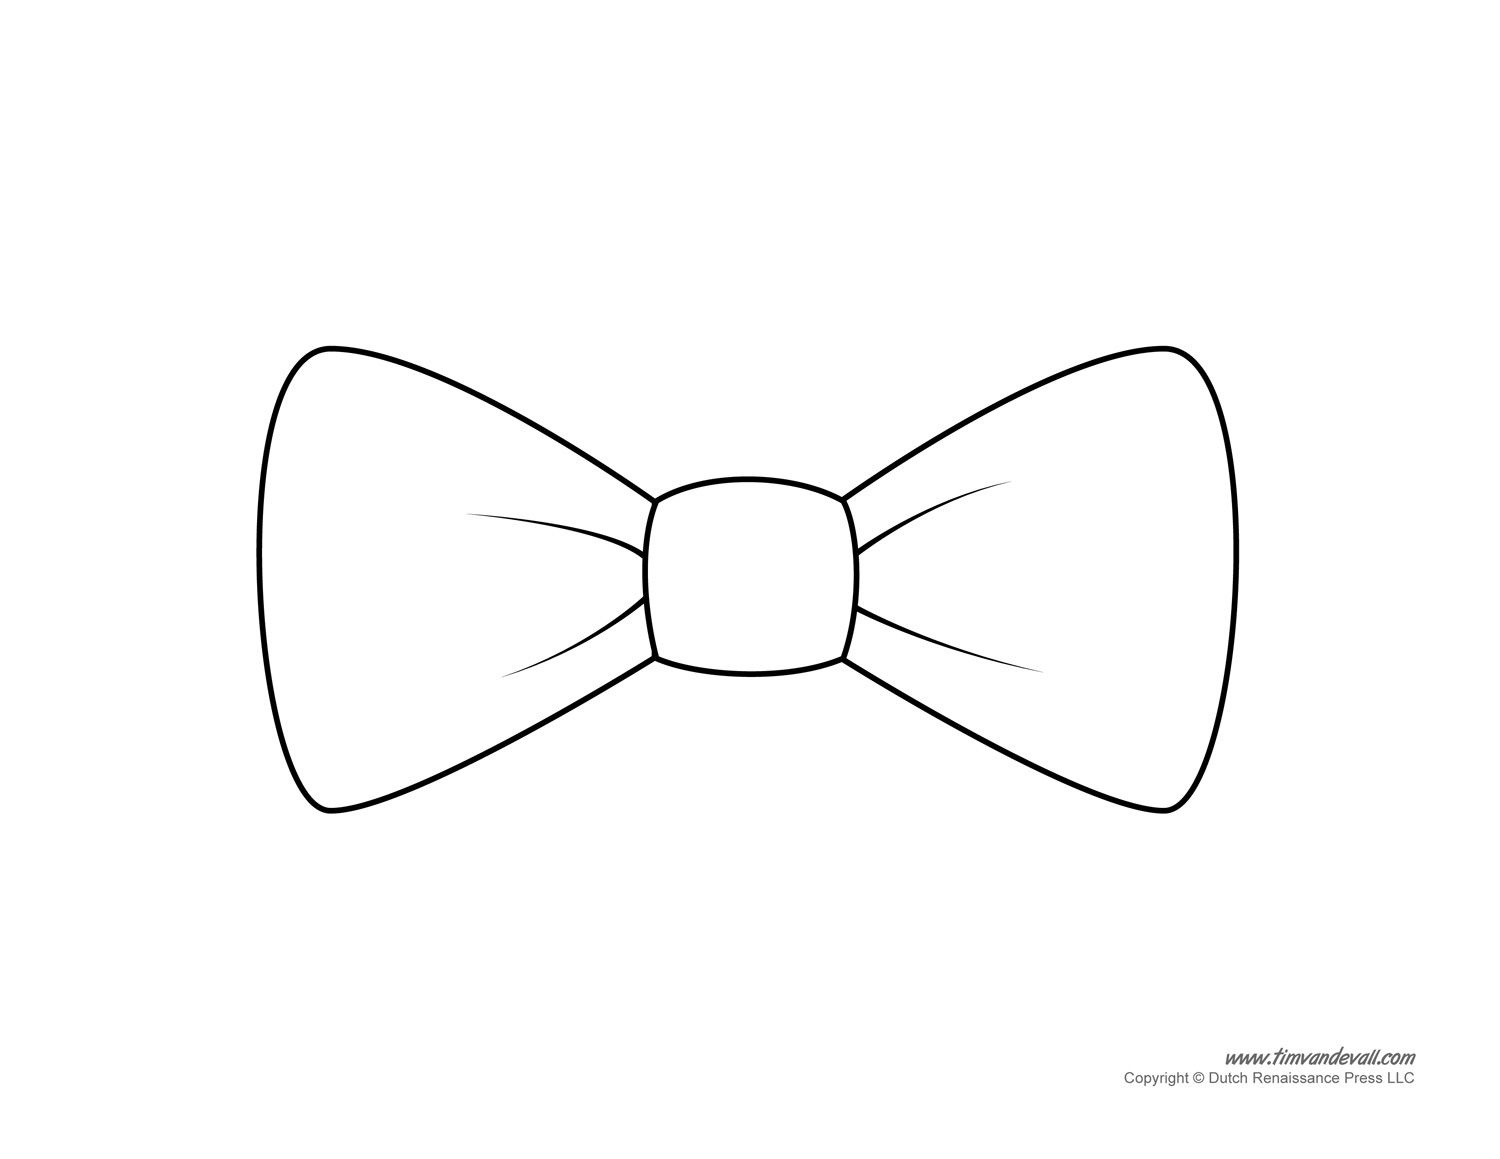 Bow Tie Drawing | Paper Bow Tie Templates |Bow Tie Printables - Free Bow Tie Template Printable